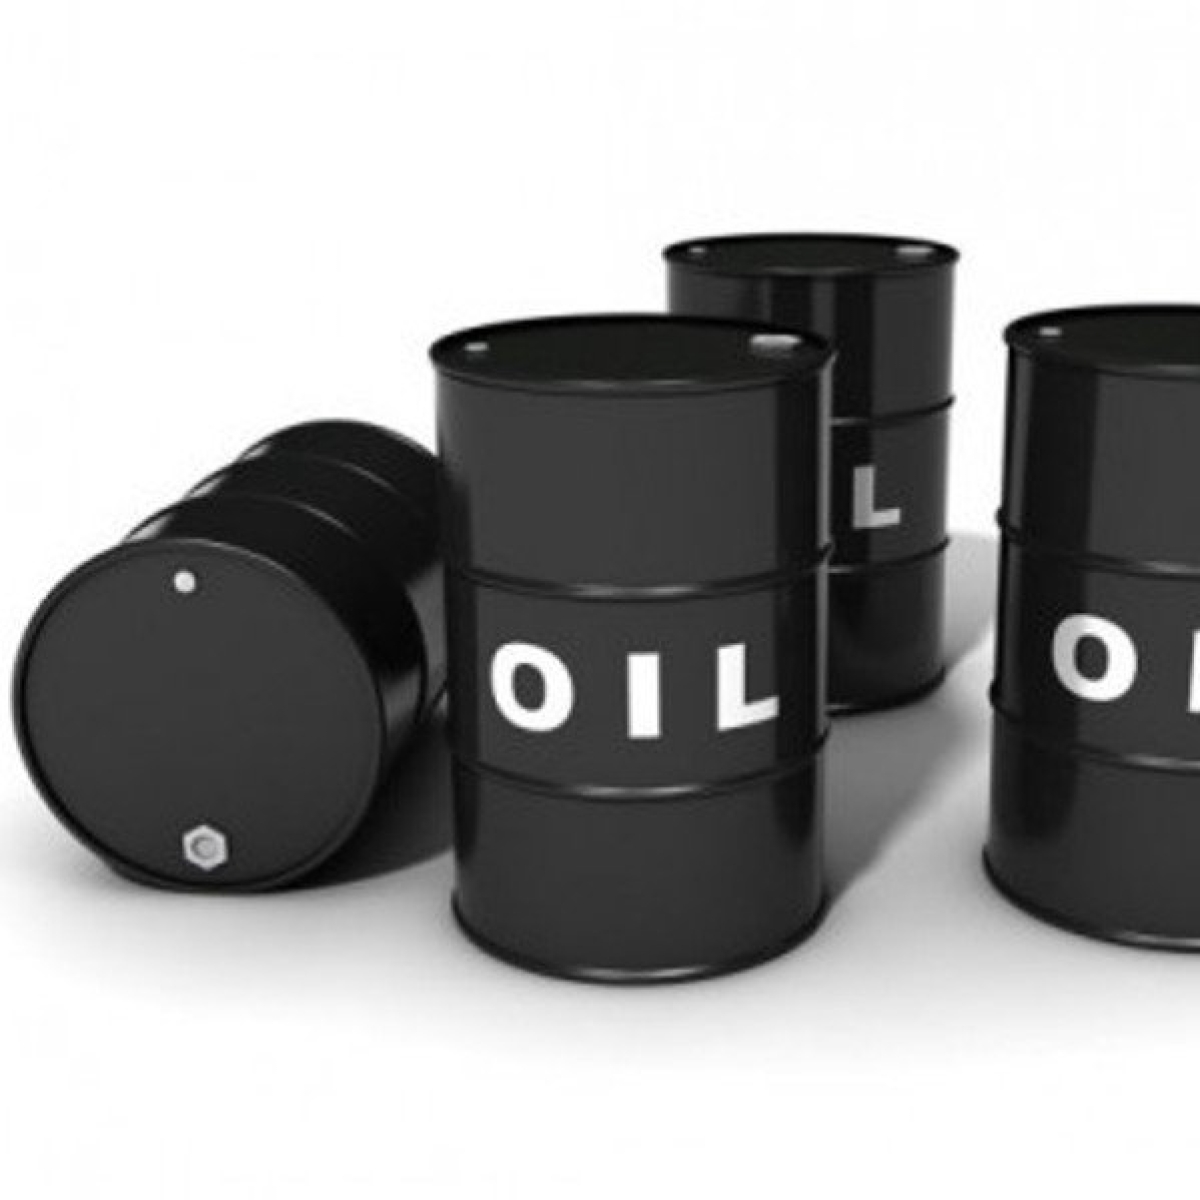 Global oil prices set to be relatively low in 2020: IATA